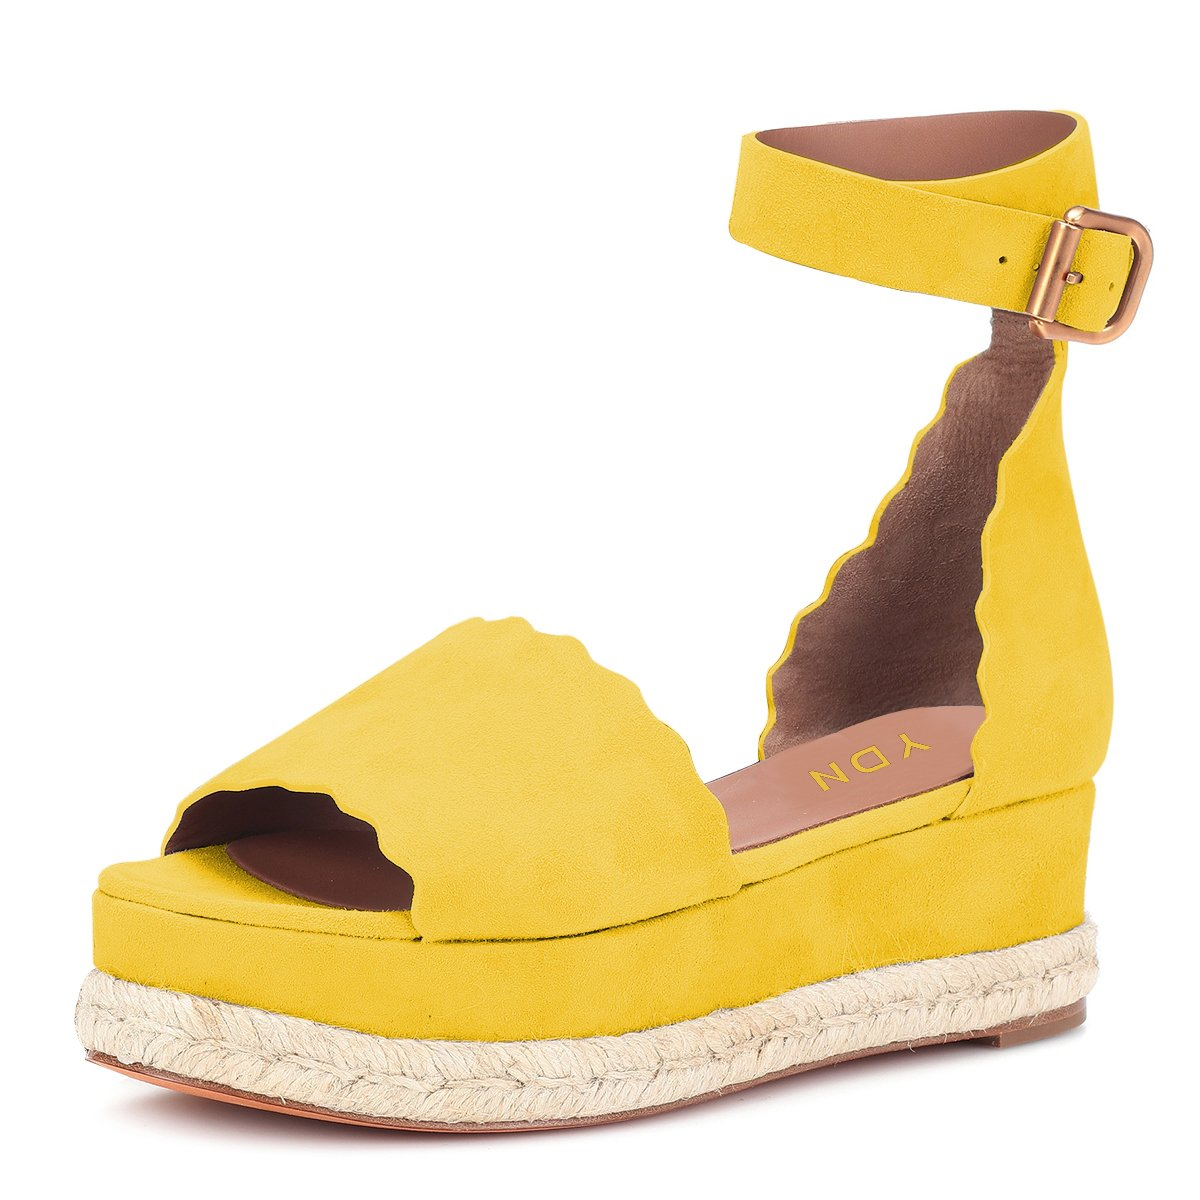 YDN Women Espadrille Peep Toe Ankle Straps Wedge Sandals Low Heels Platform Shoes with Buckle B07DCNX5BL 11 M US|Yellow